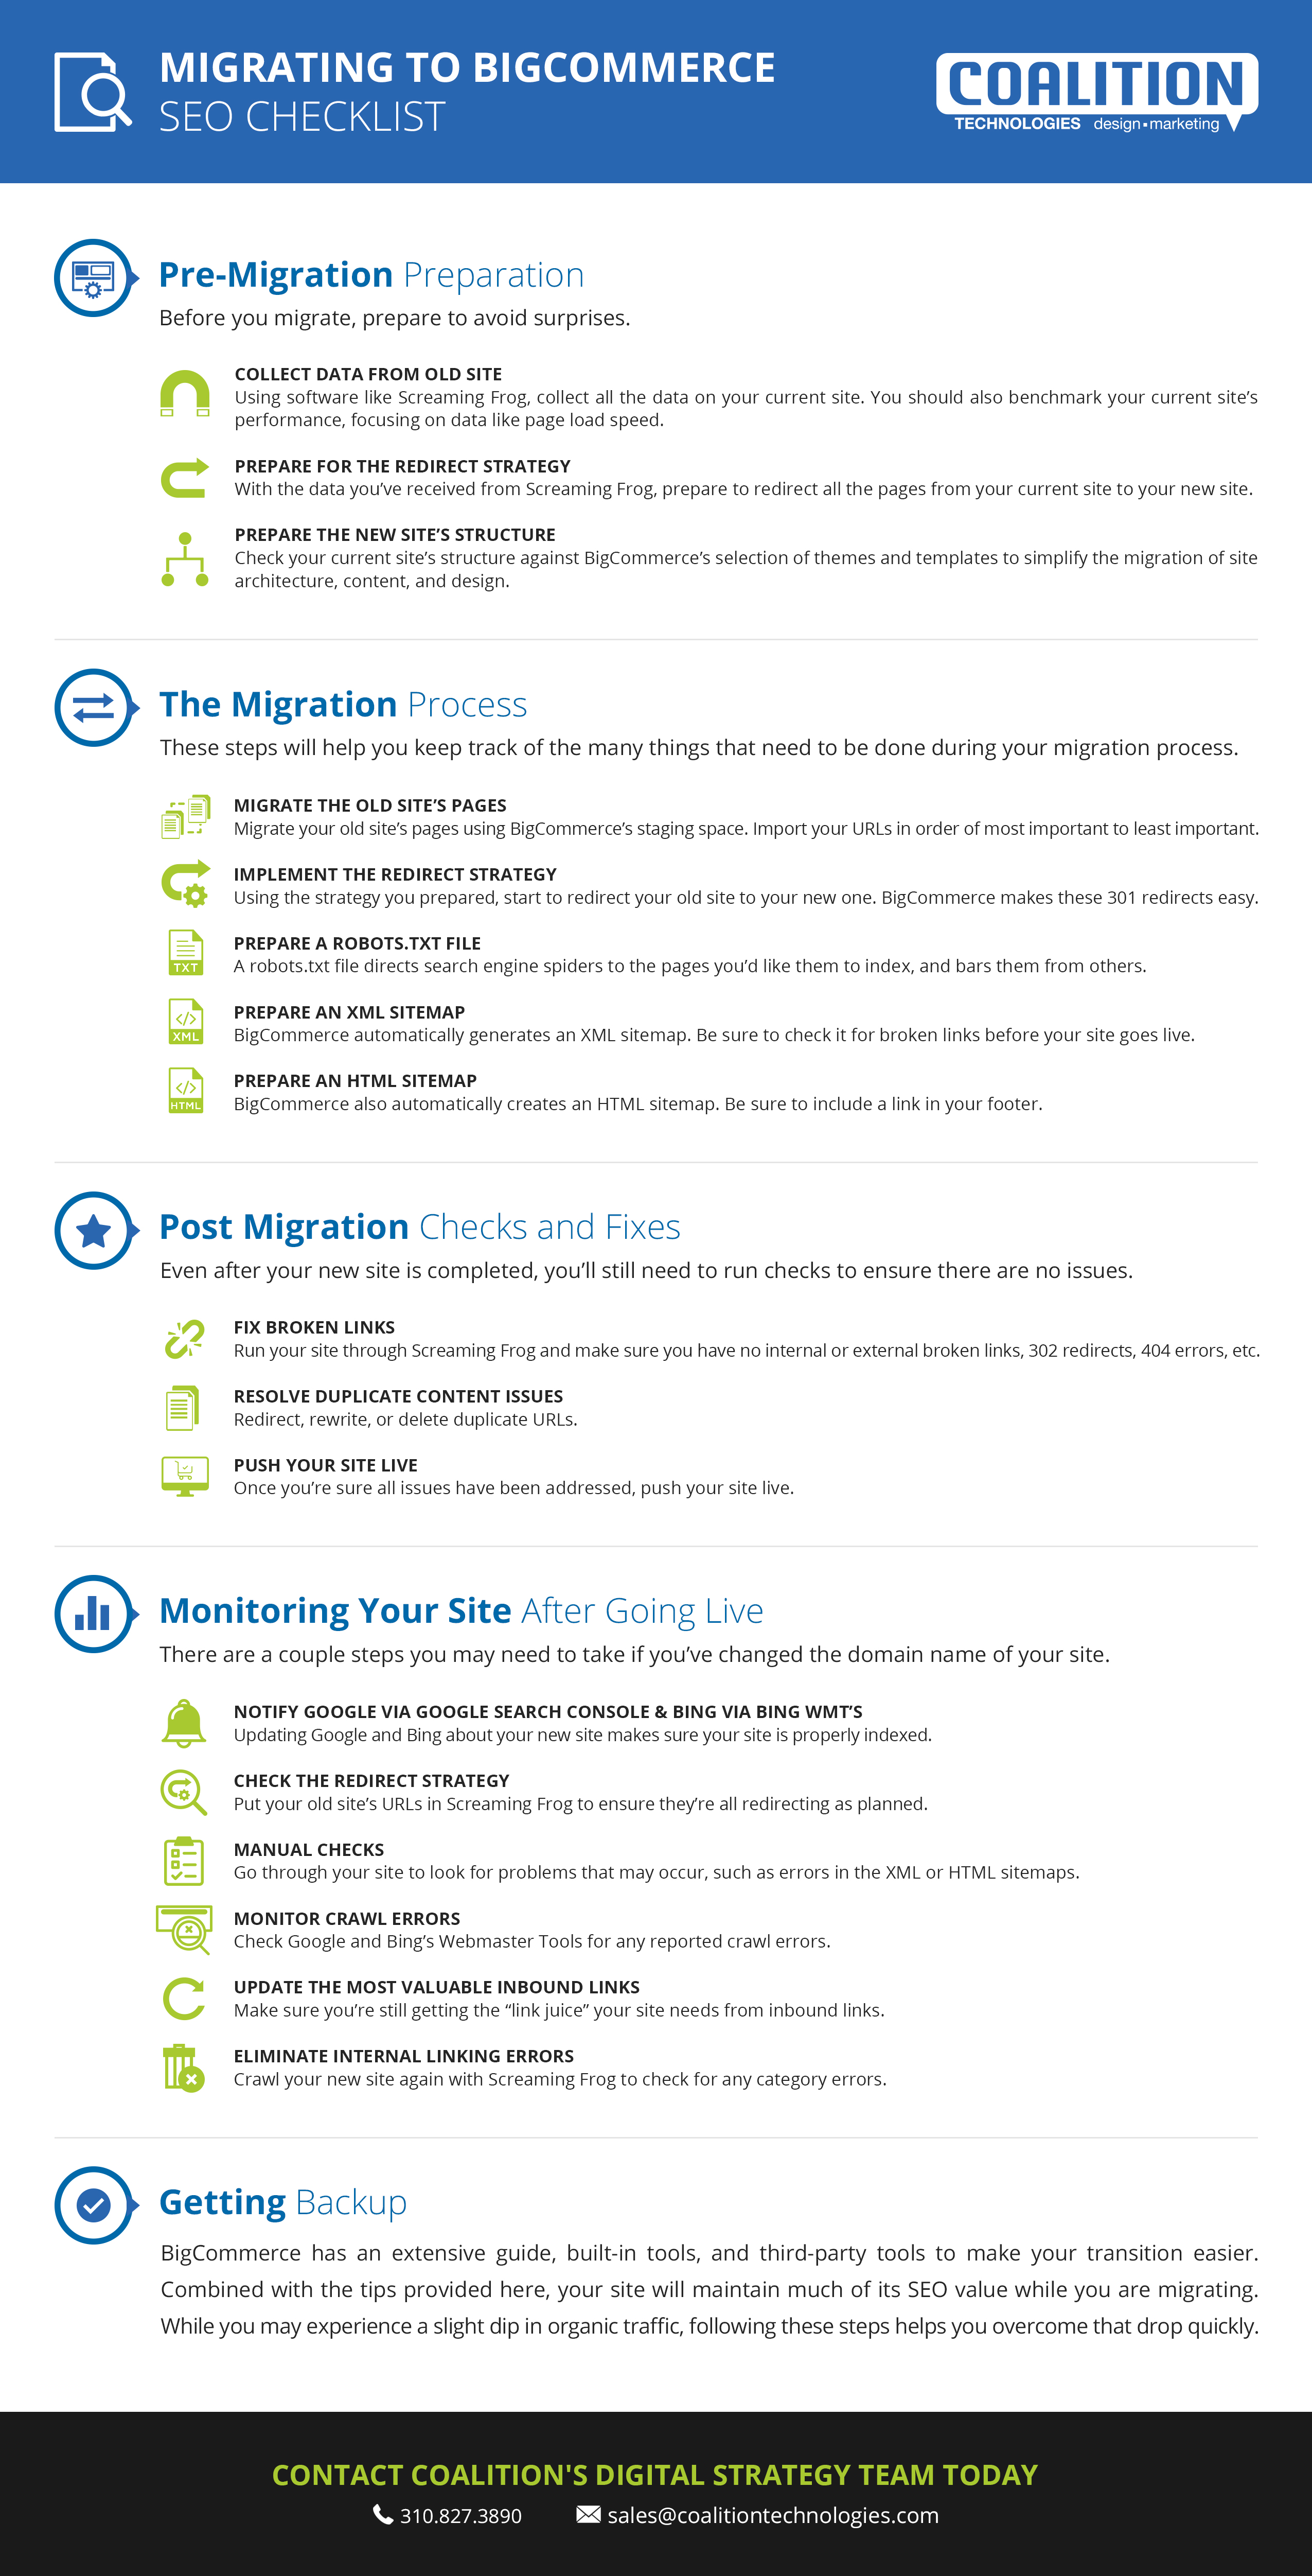 Migrating to BigCommerce SEO Checklist